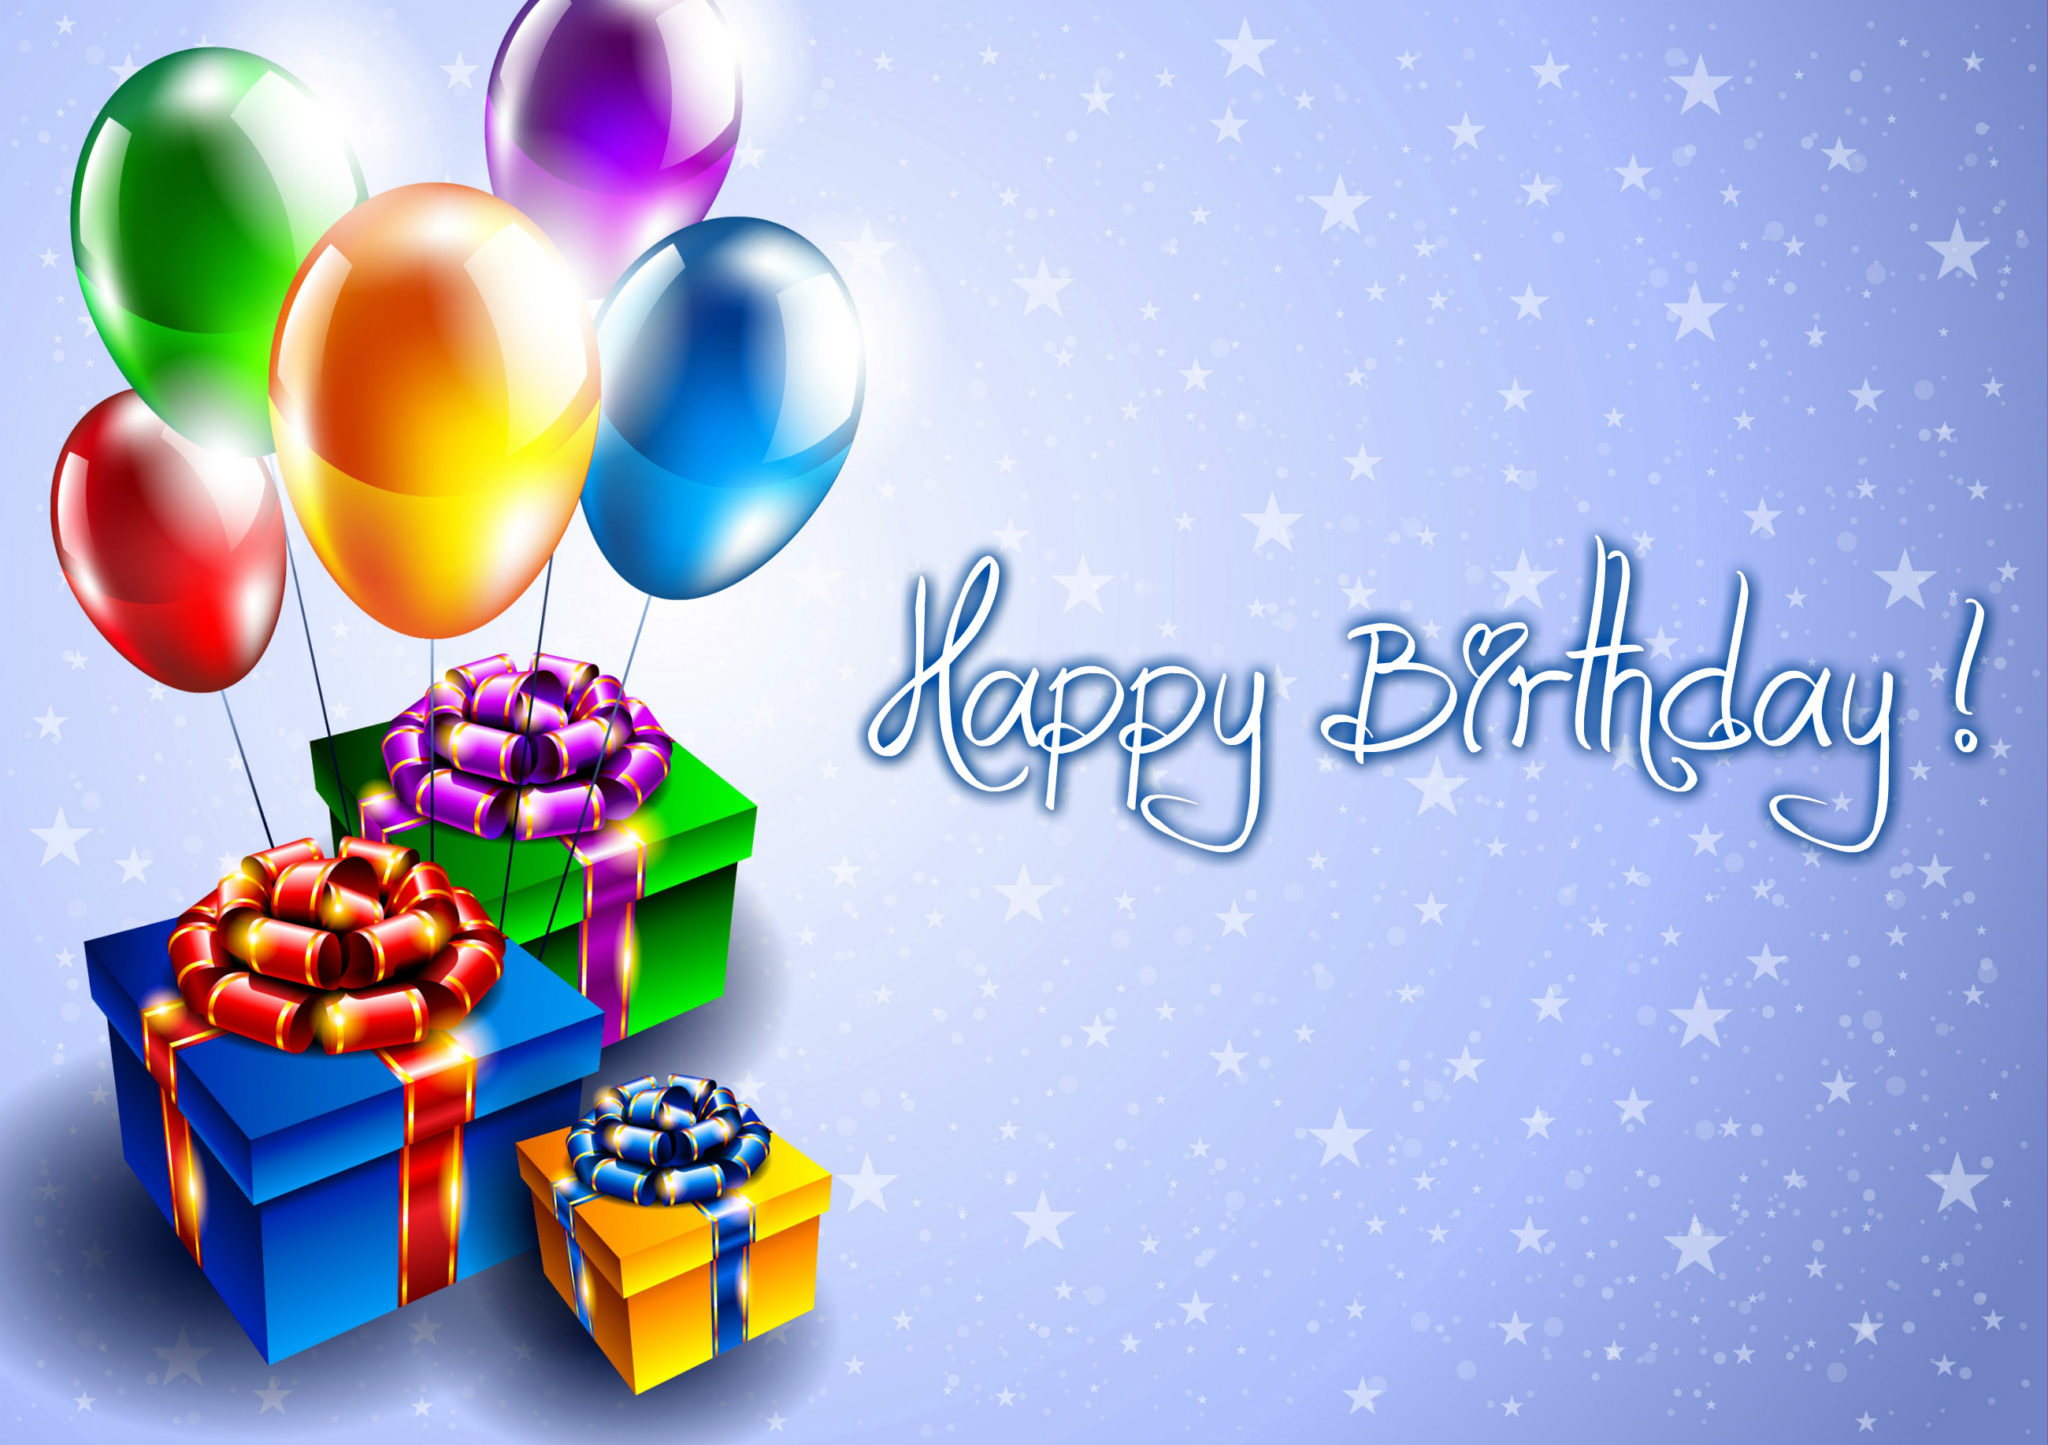 Best Happy Birthday Niece Wishes Messages & Images